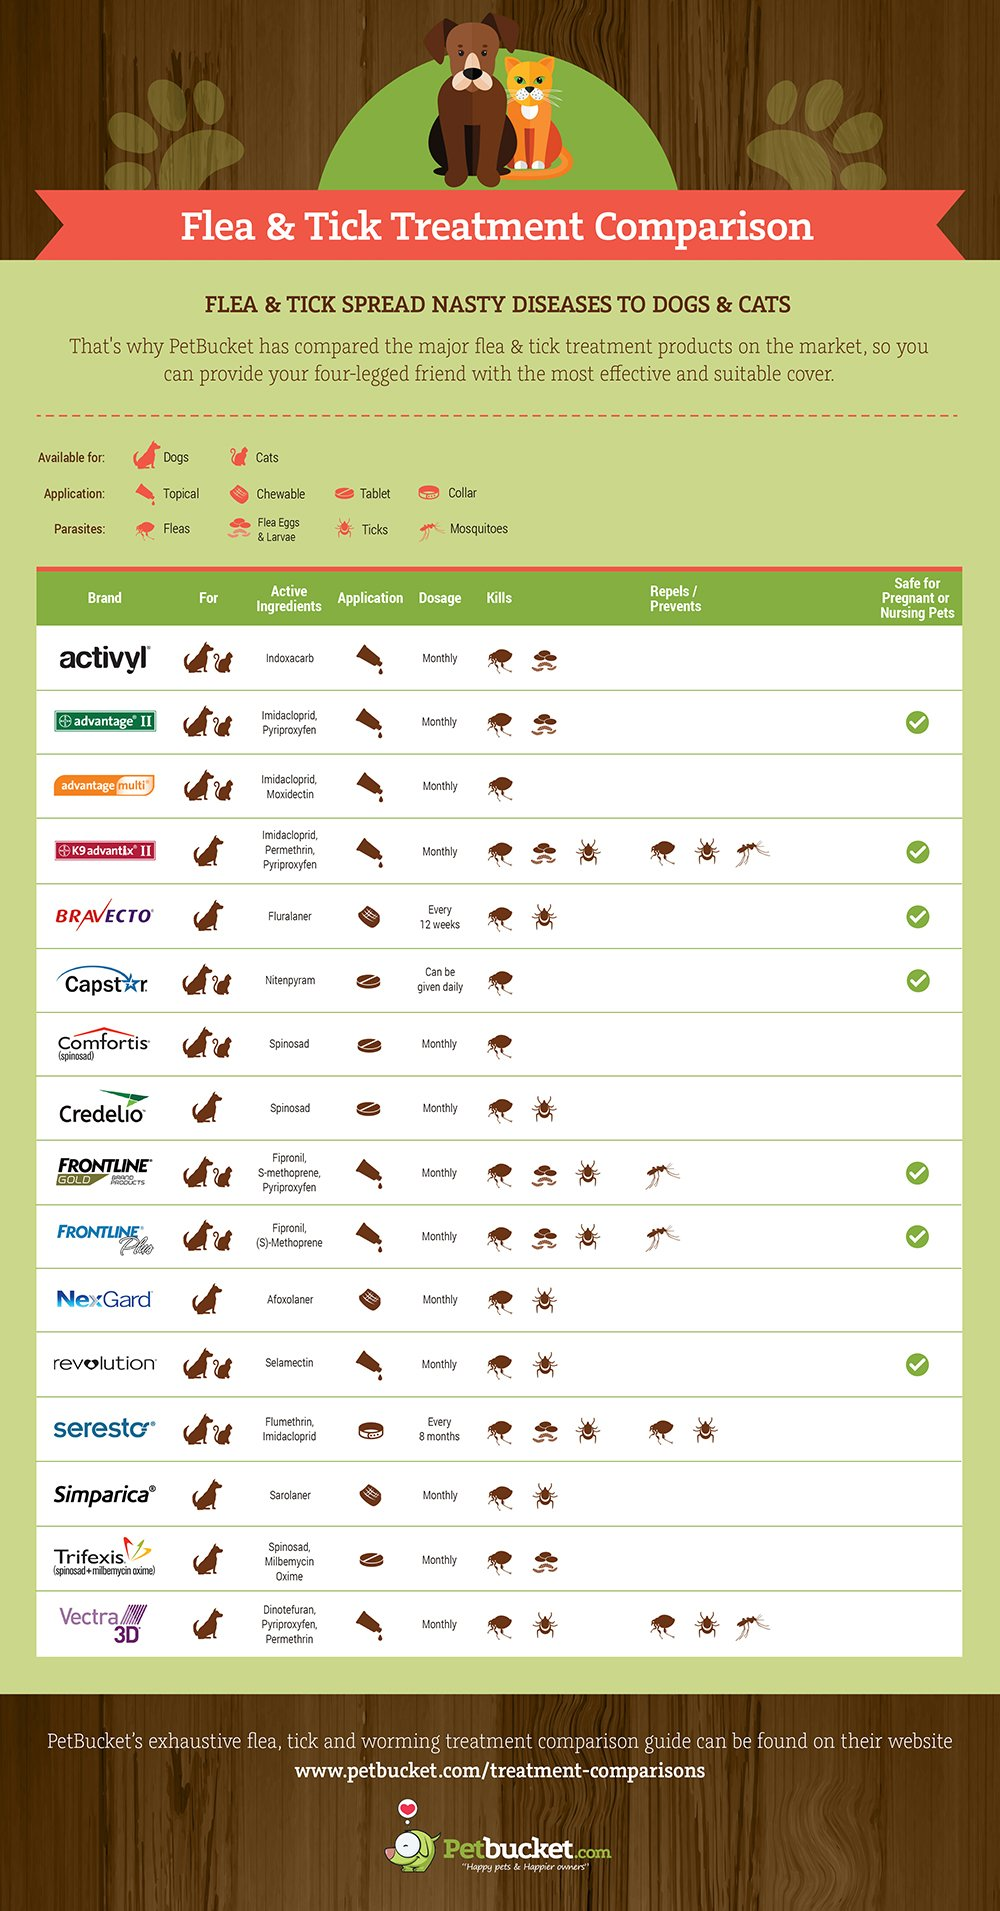 flea & tick treatment comparison infographic